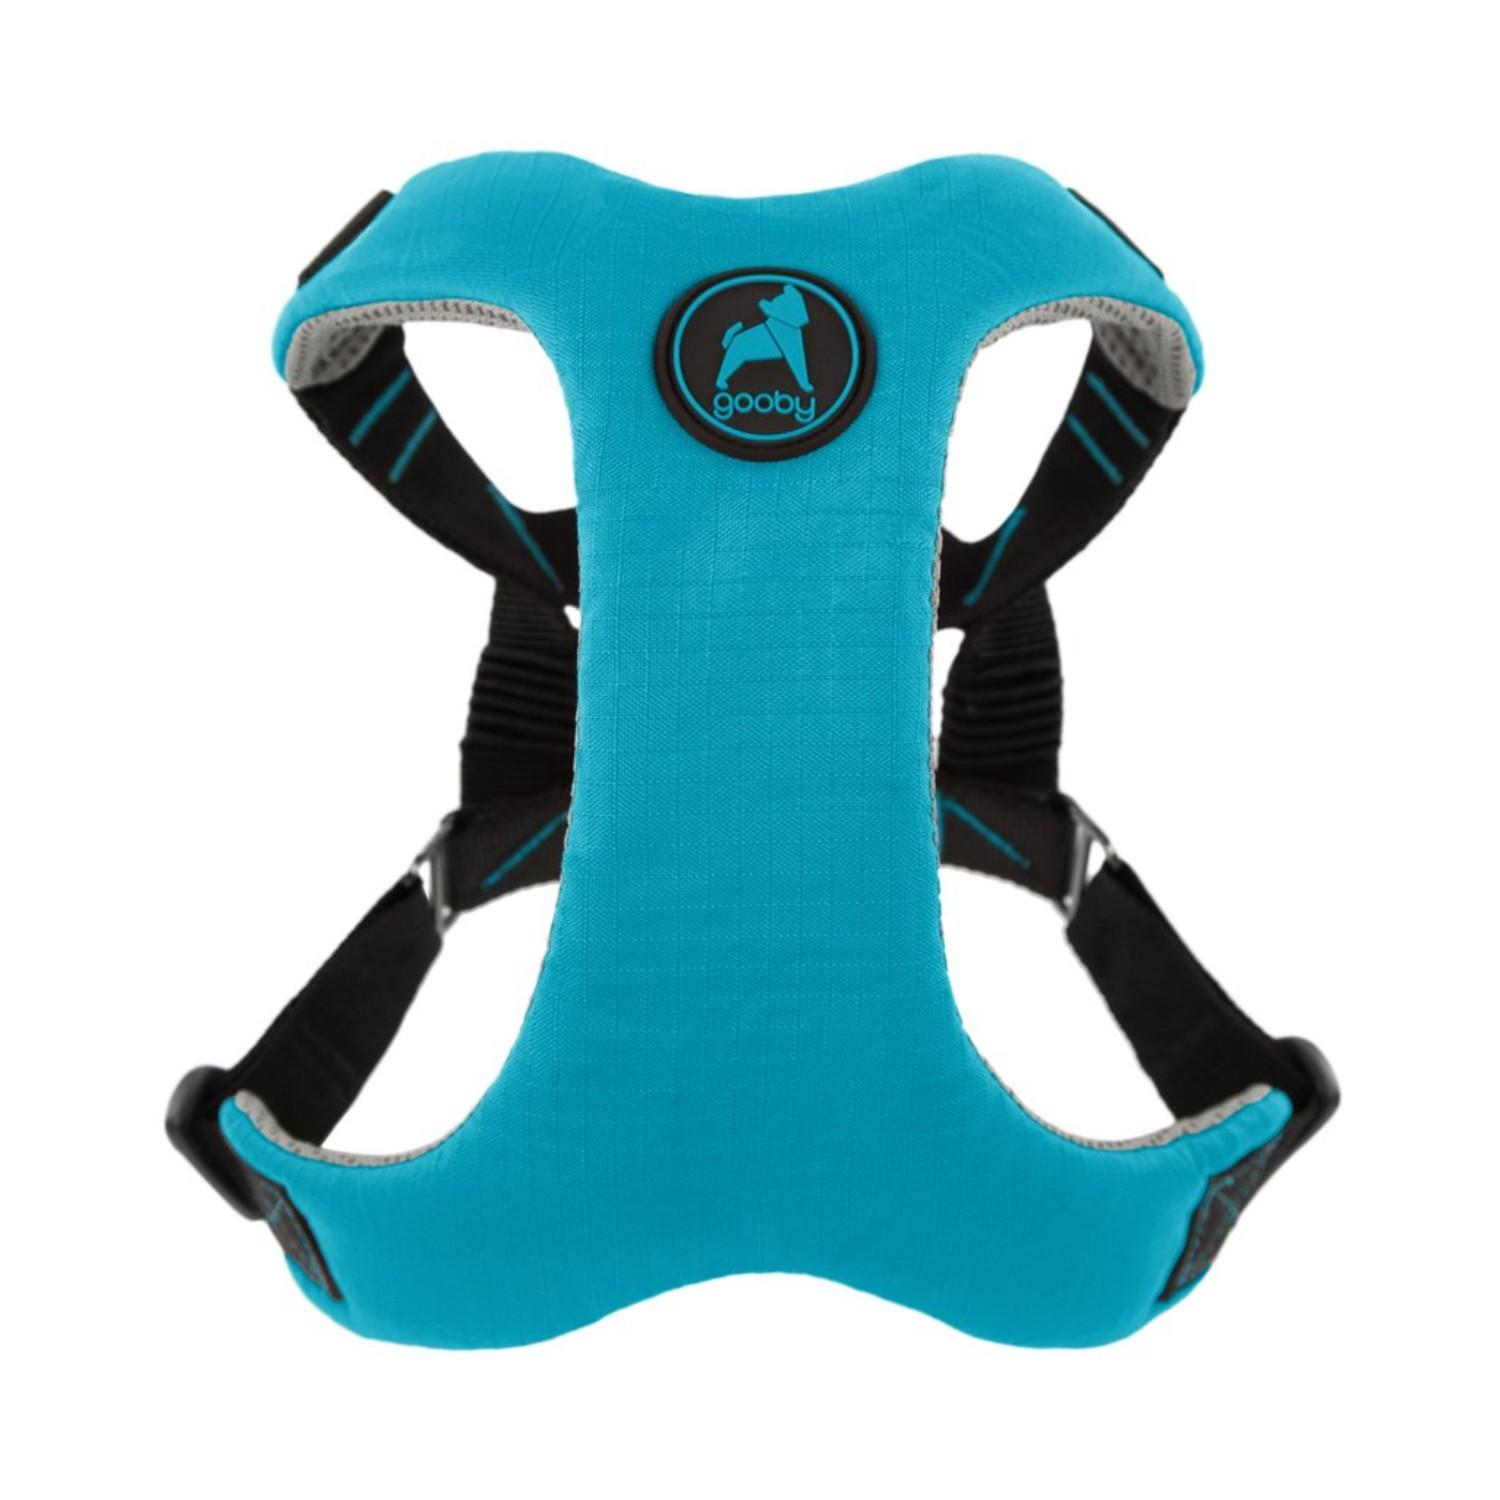 Gooby Convertible Z Dog Harness - Turquoise